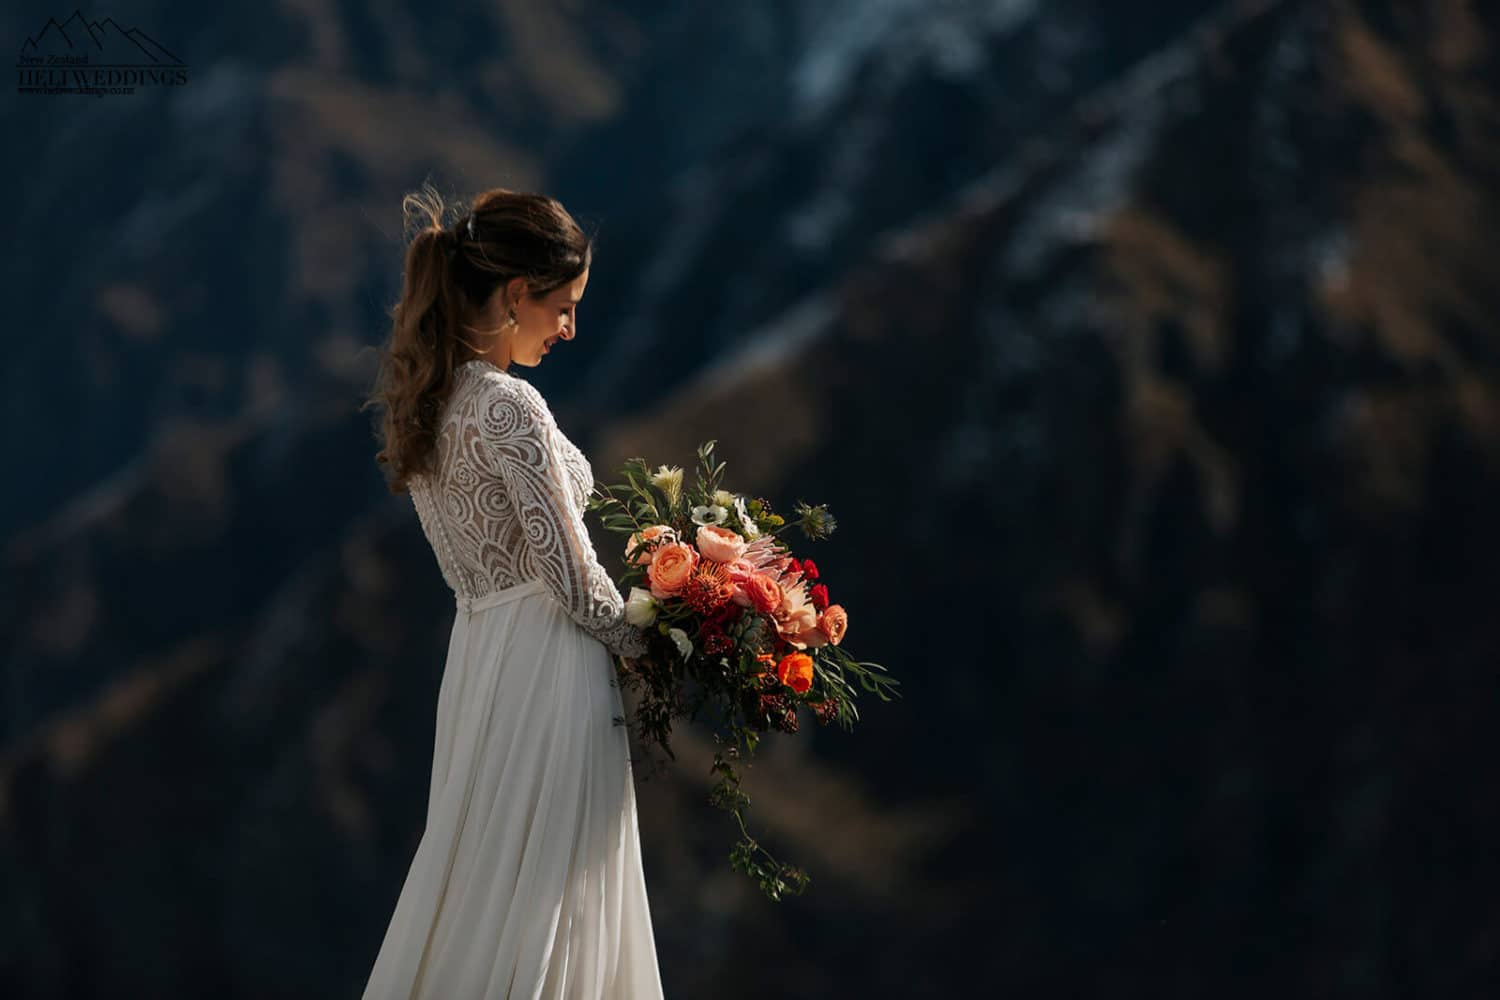 Wedding bride and flowers